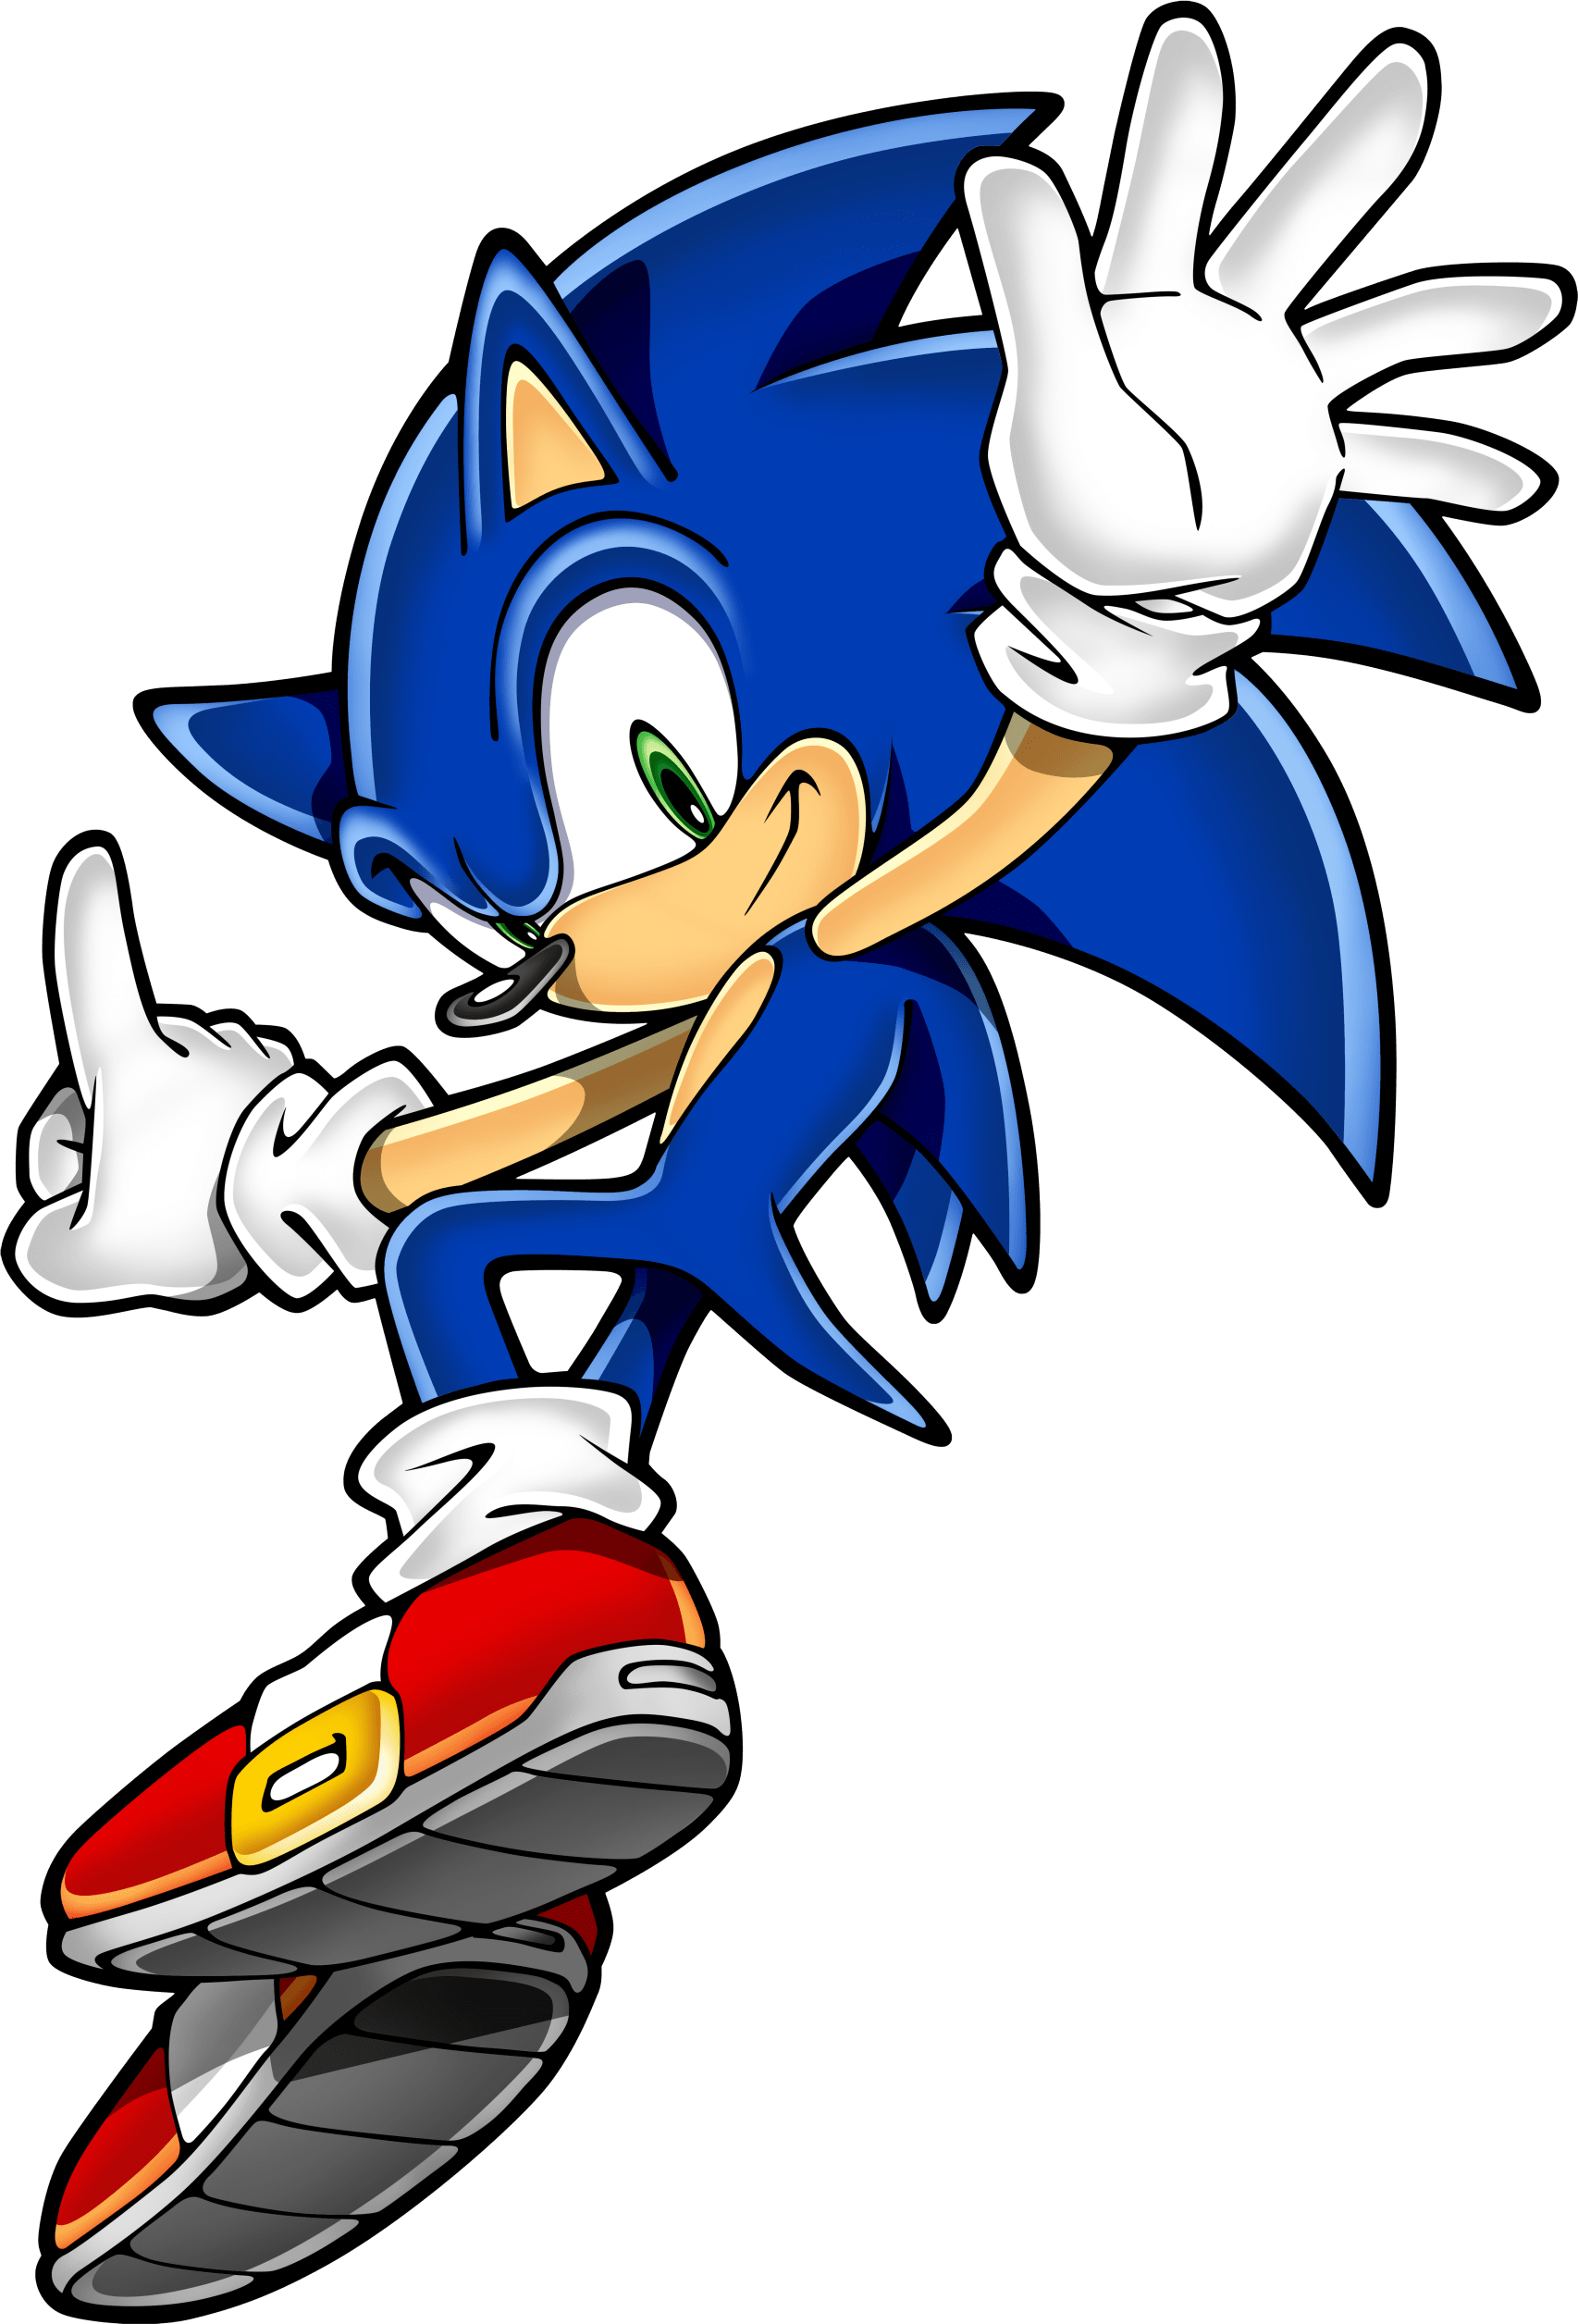 Sonic jumping transparent png. Hedgehog clipart file